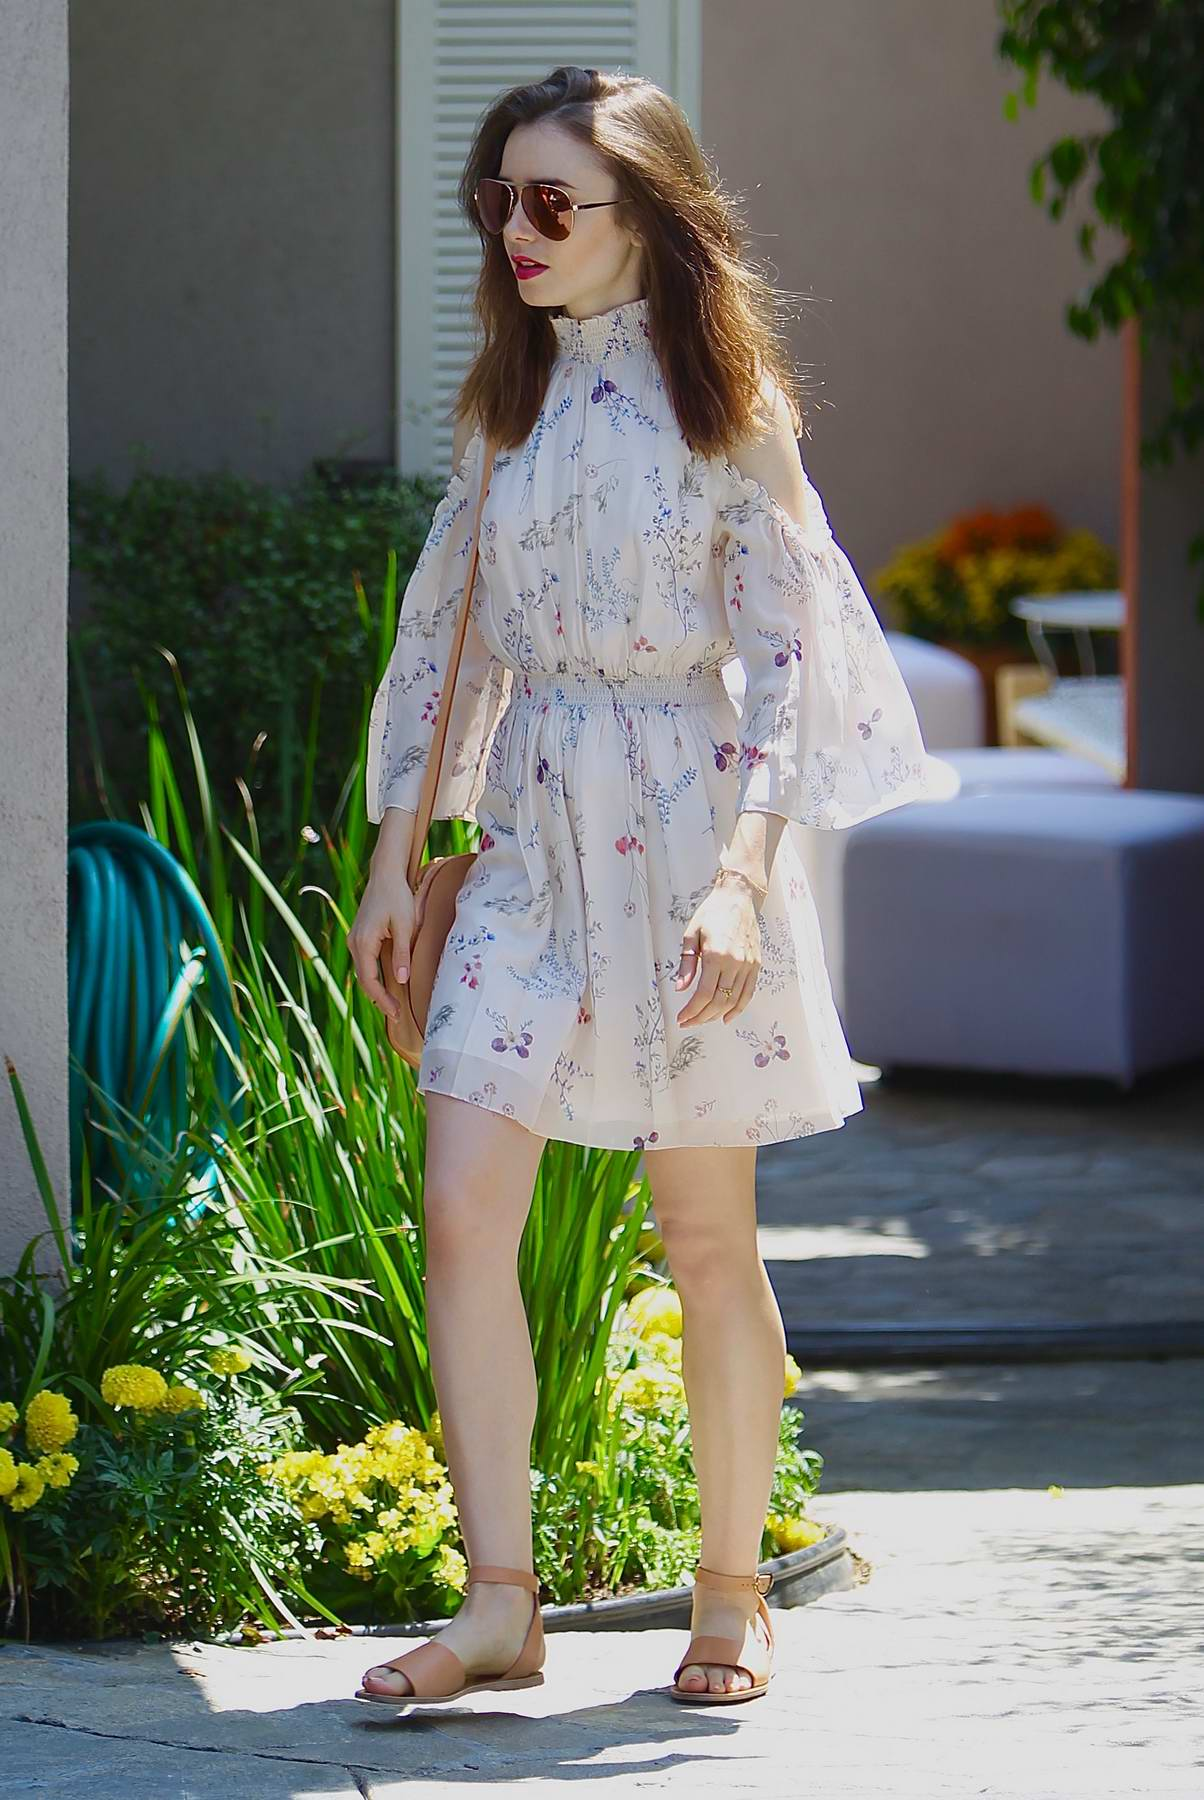 Lily Collins attending InStyles Day of Indulgence party in Brentwood, Los Angeles